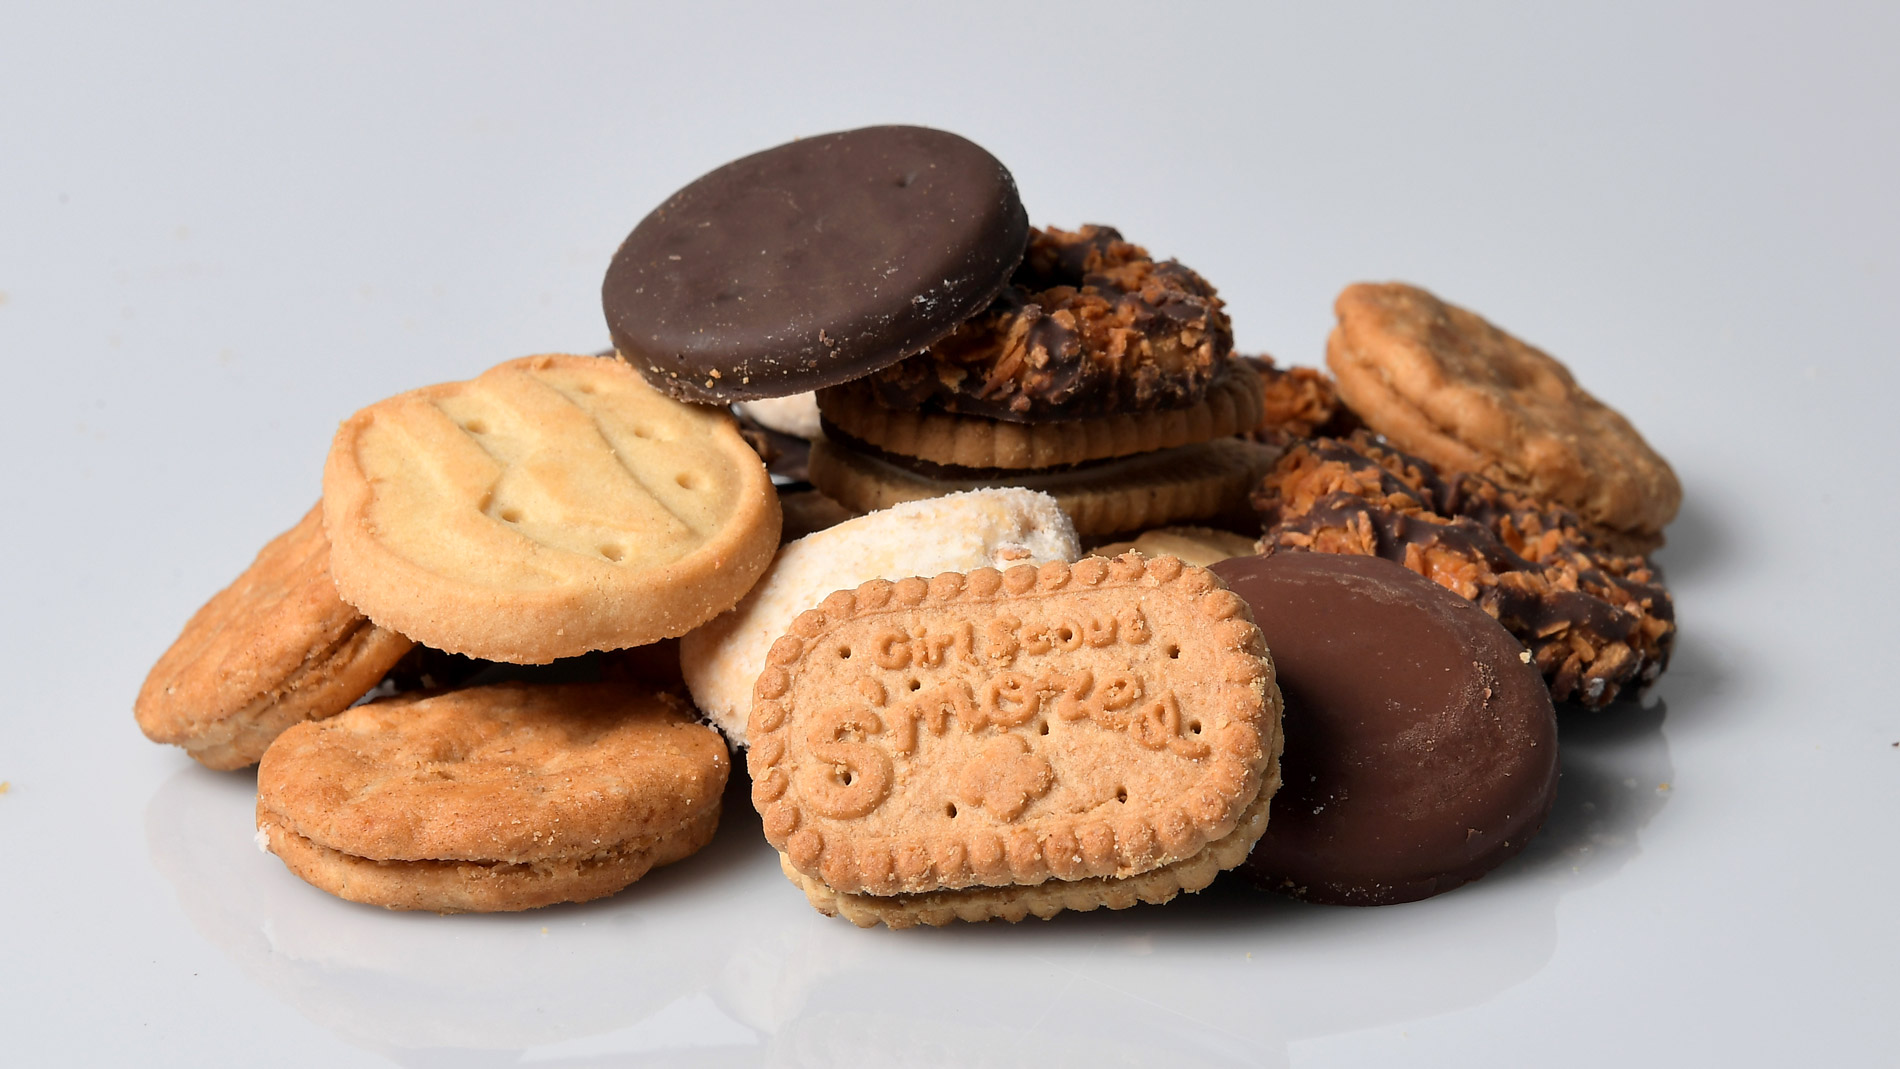 9-year-old Girl Scout sells cookies outside California marijuana dispensary